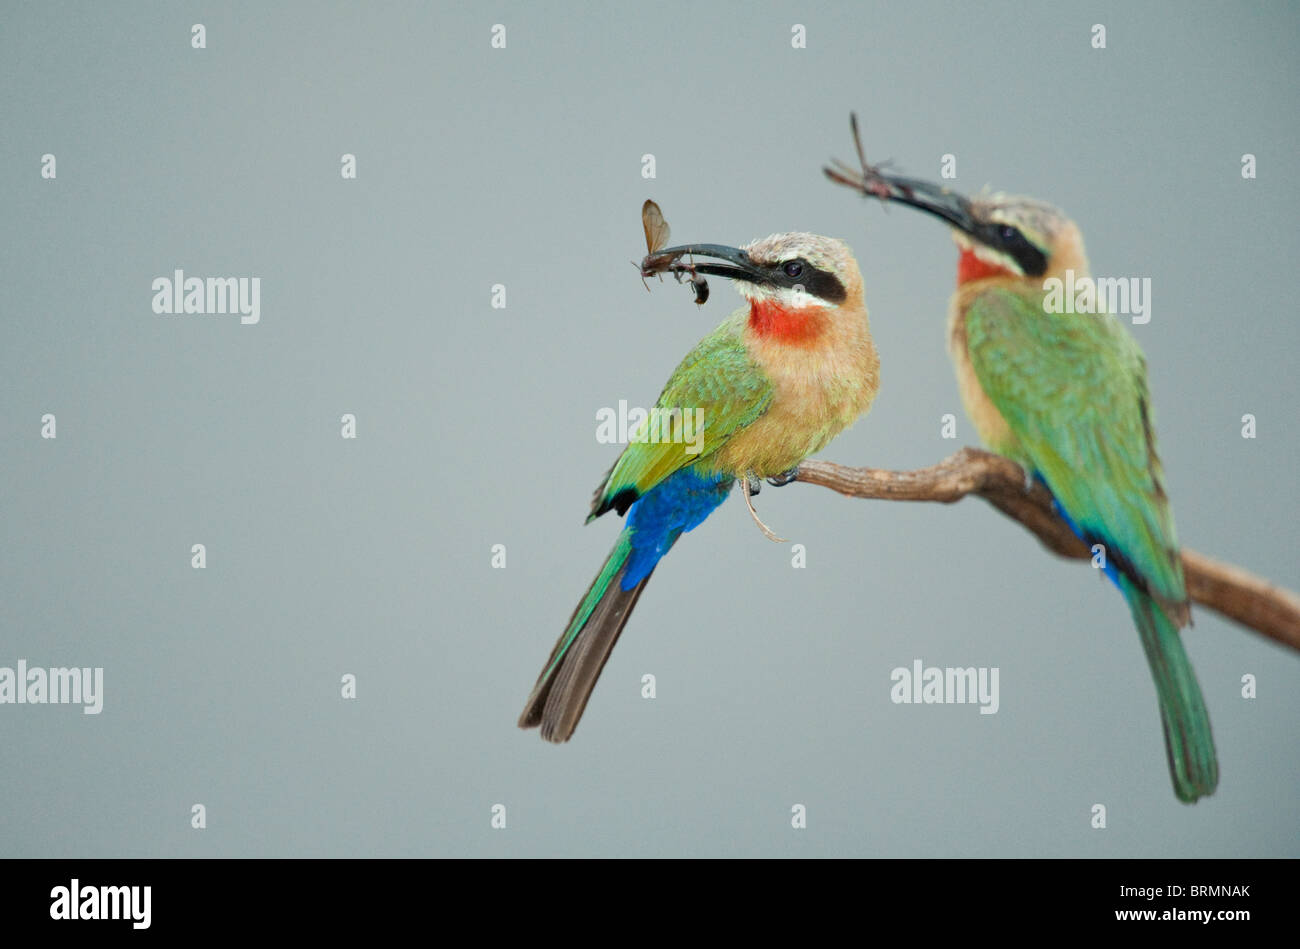 White-fronted bee-eater with insects in their beaks - Stock Image